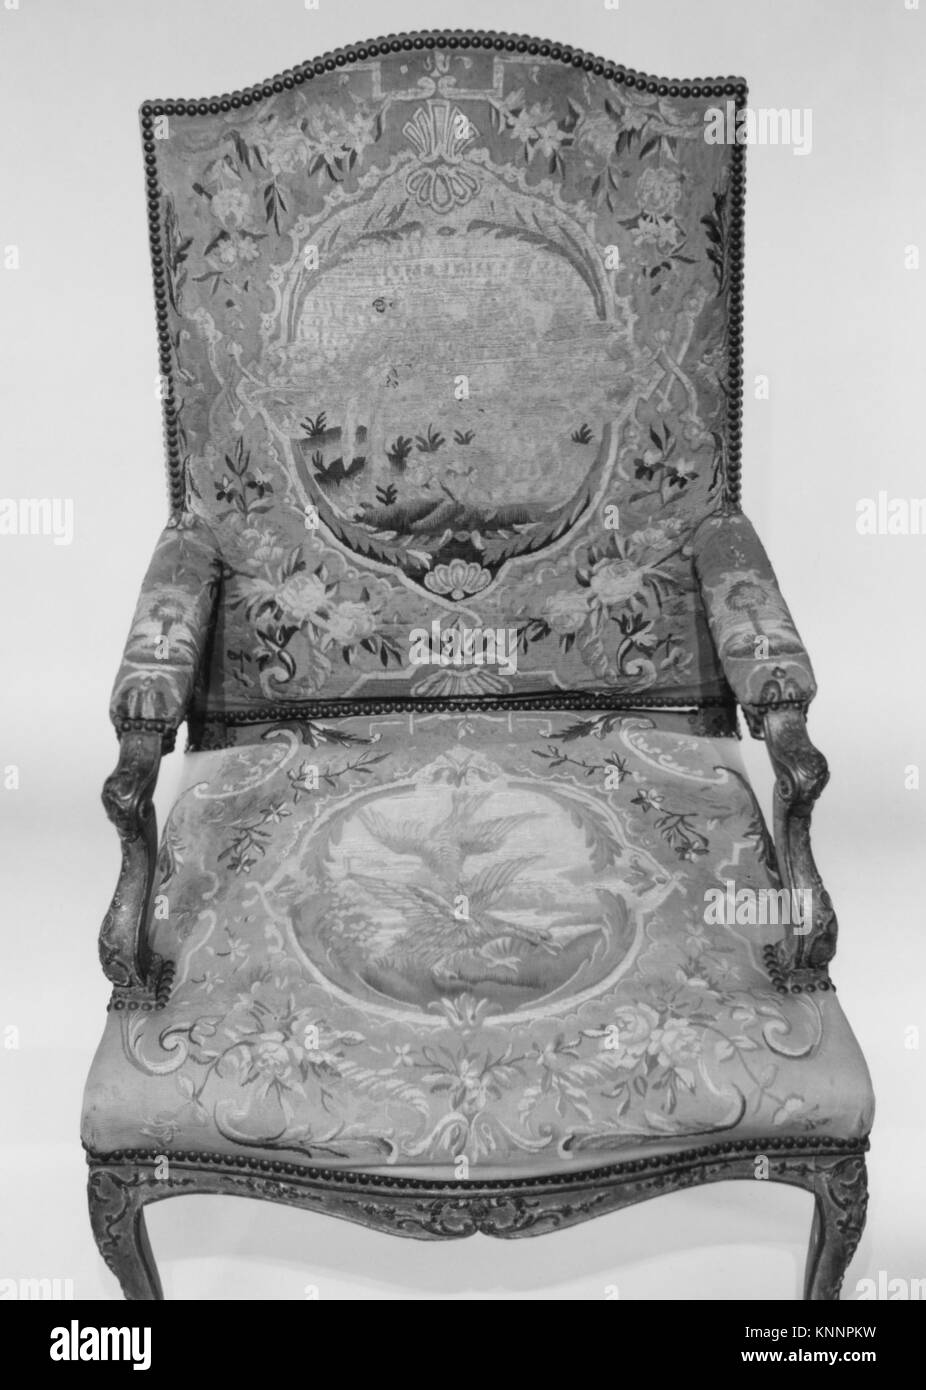 Fauteuil Met Hokker.74 61 Stock Photos 74 61 Stock Images Alamy